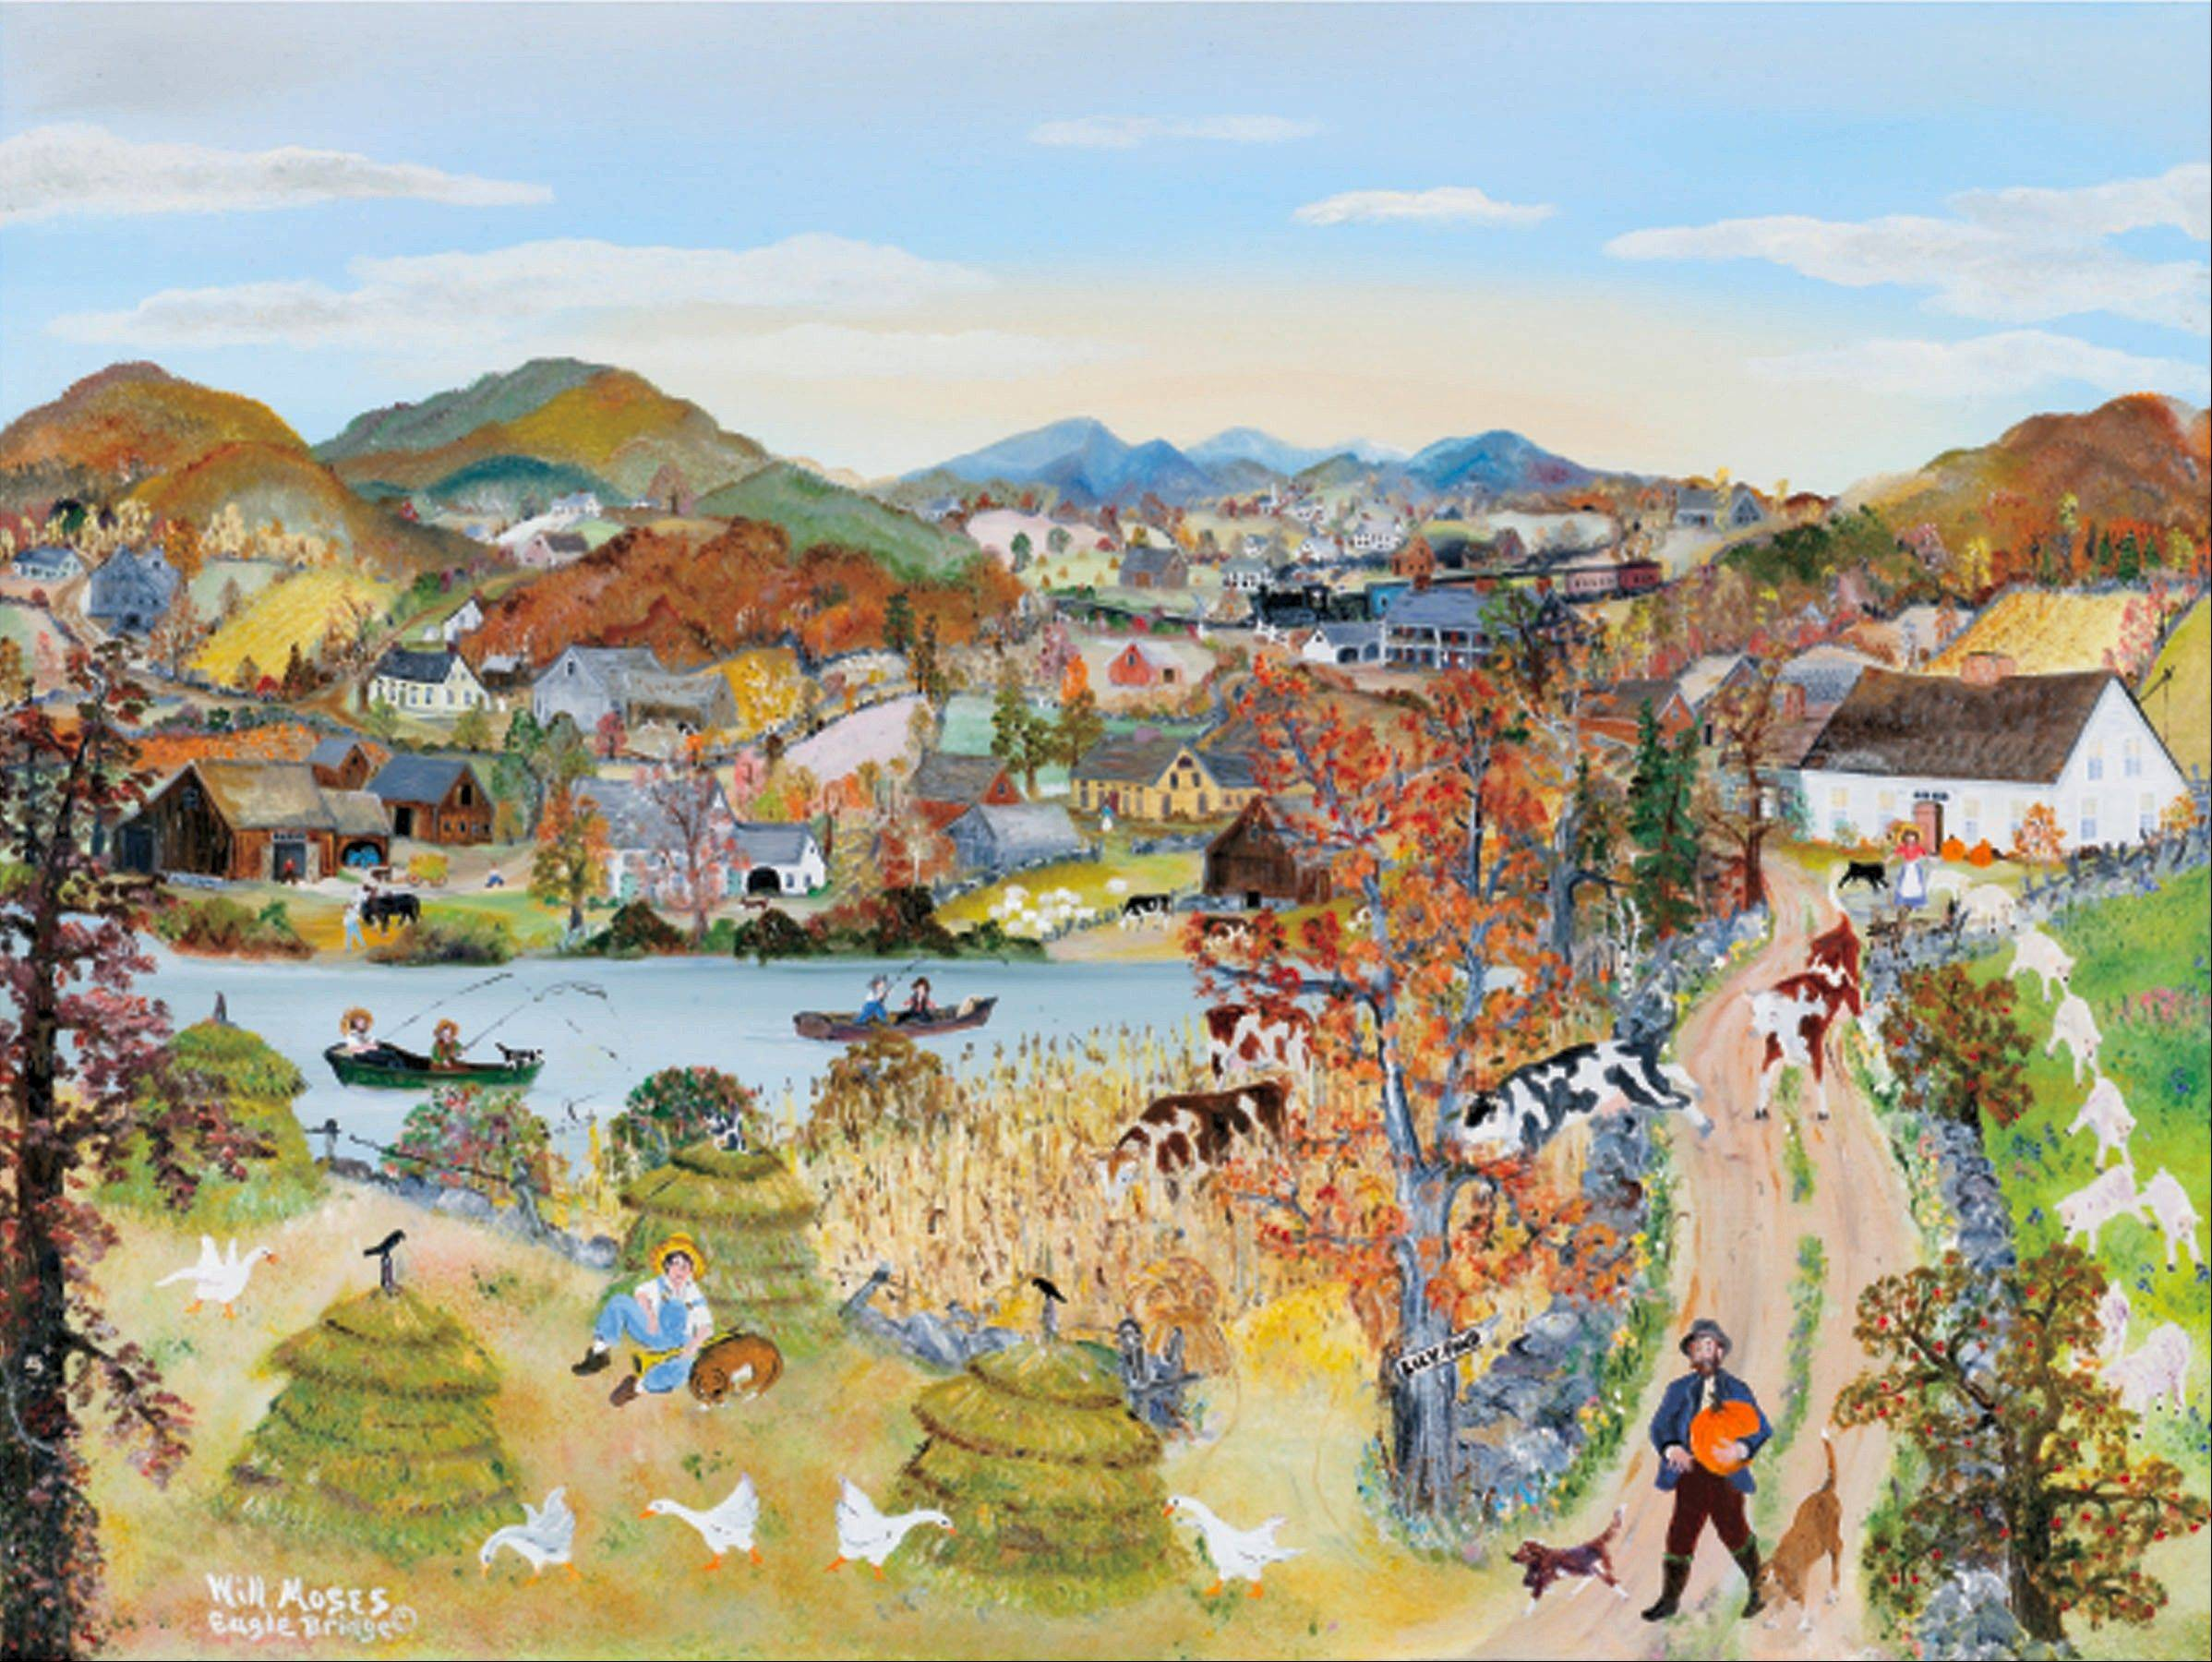 """Come Blow Your Horn,"" a painting by Will Moses, great-grandson of Grandma Moses, will debut at the Autumn Country Folk Art Festival in St. Charles, which opens Friday, Sept. 20."